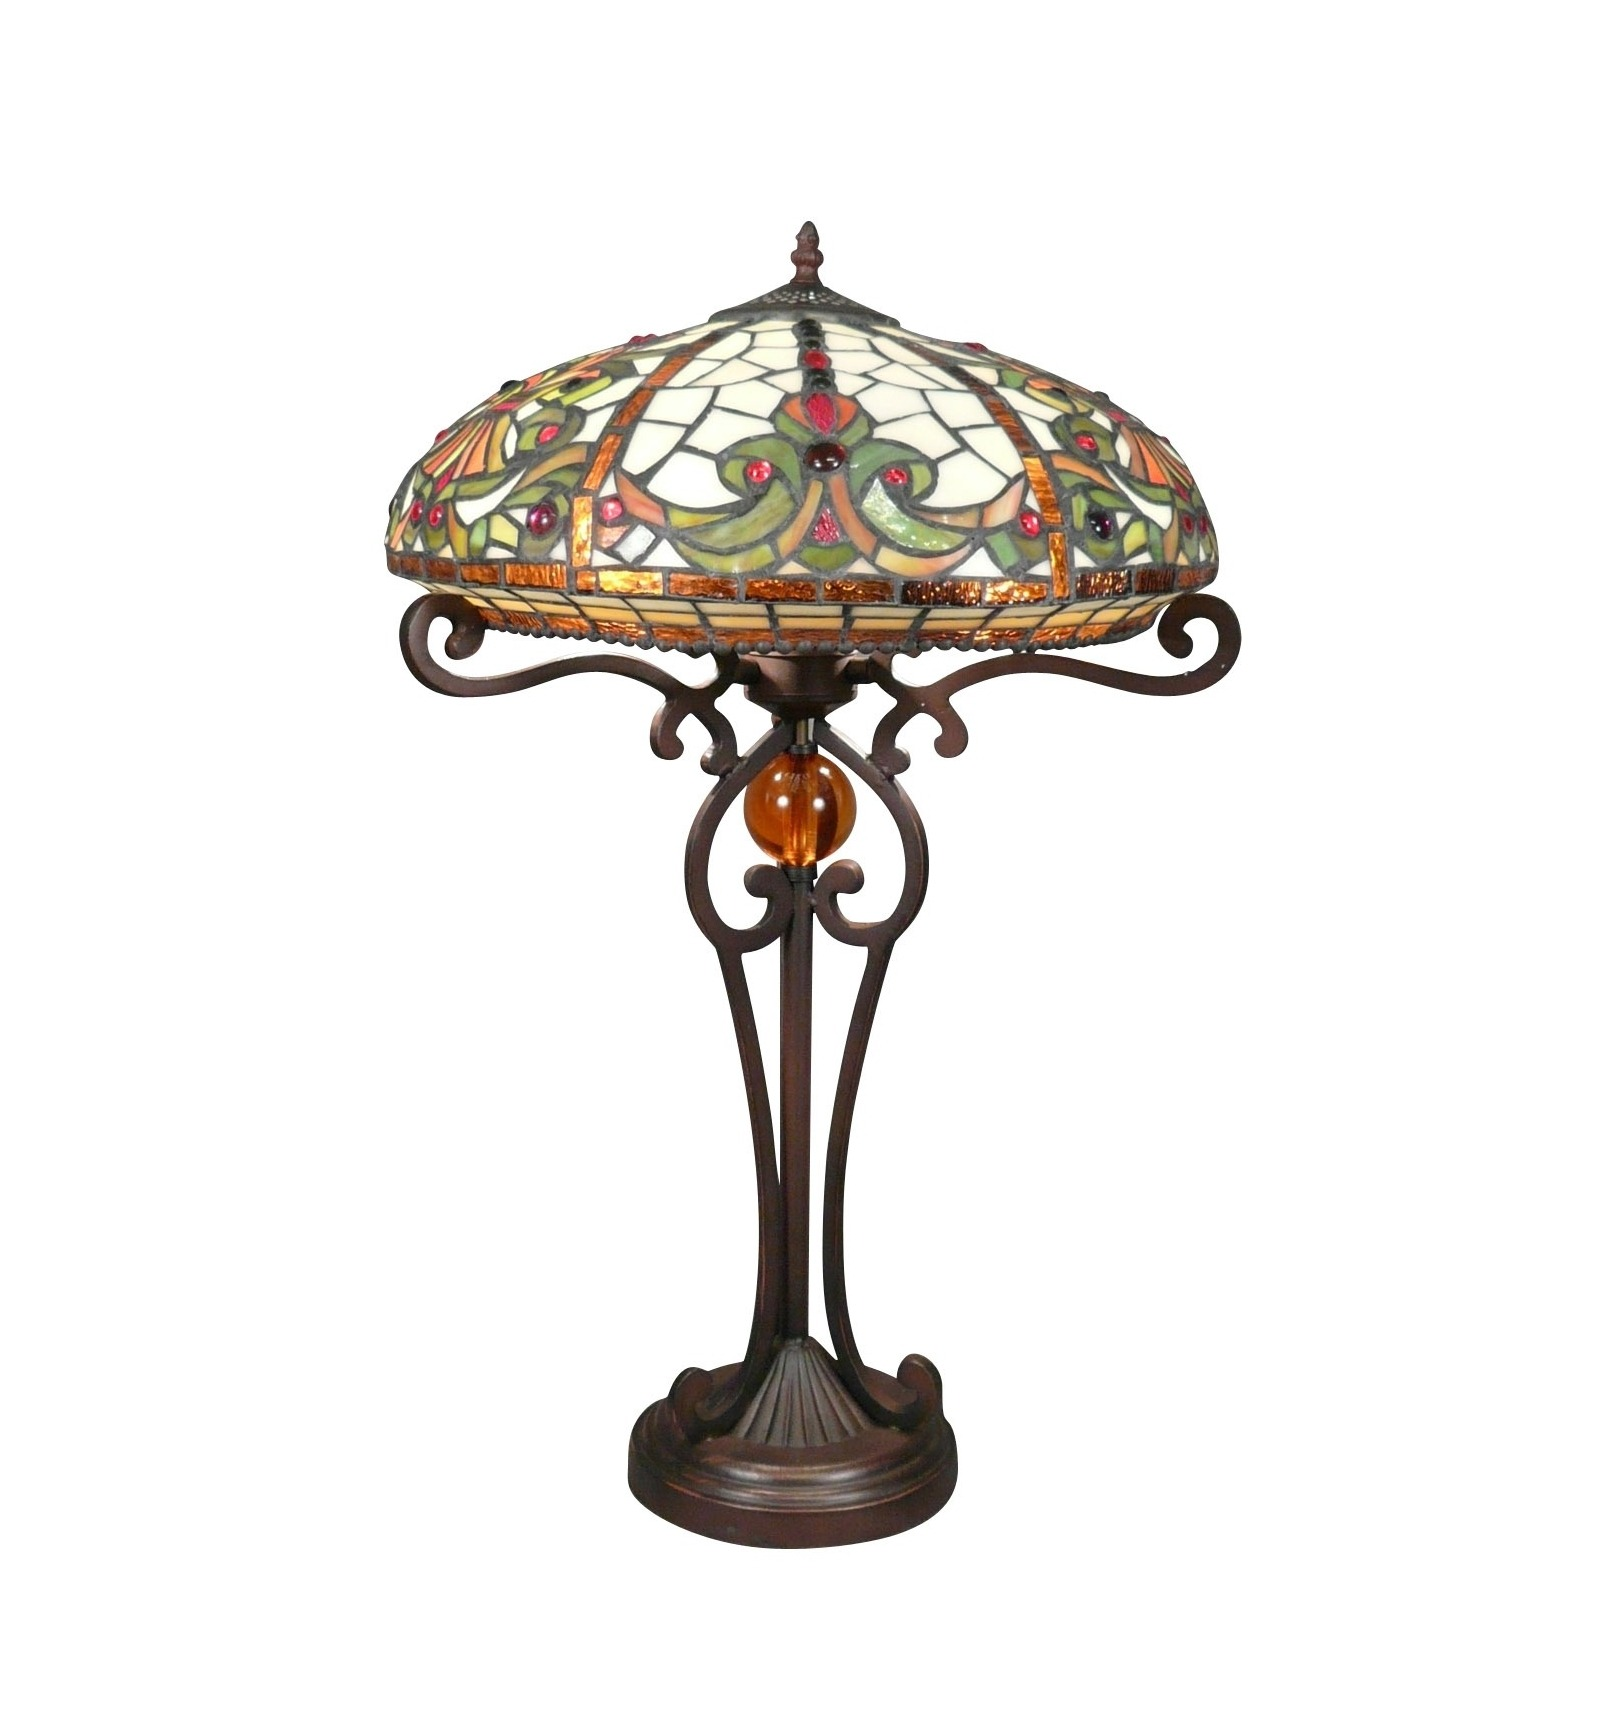 tiffany lamp baroque of the series indiana tiffany lamps shop. Black Bedroom Furniture Sets. Home Design Ideas